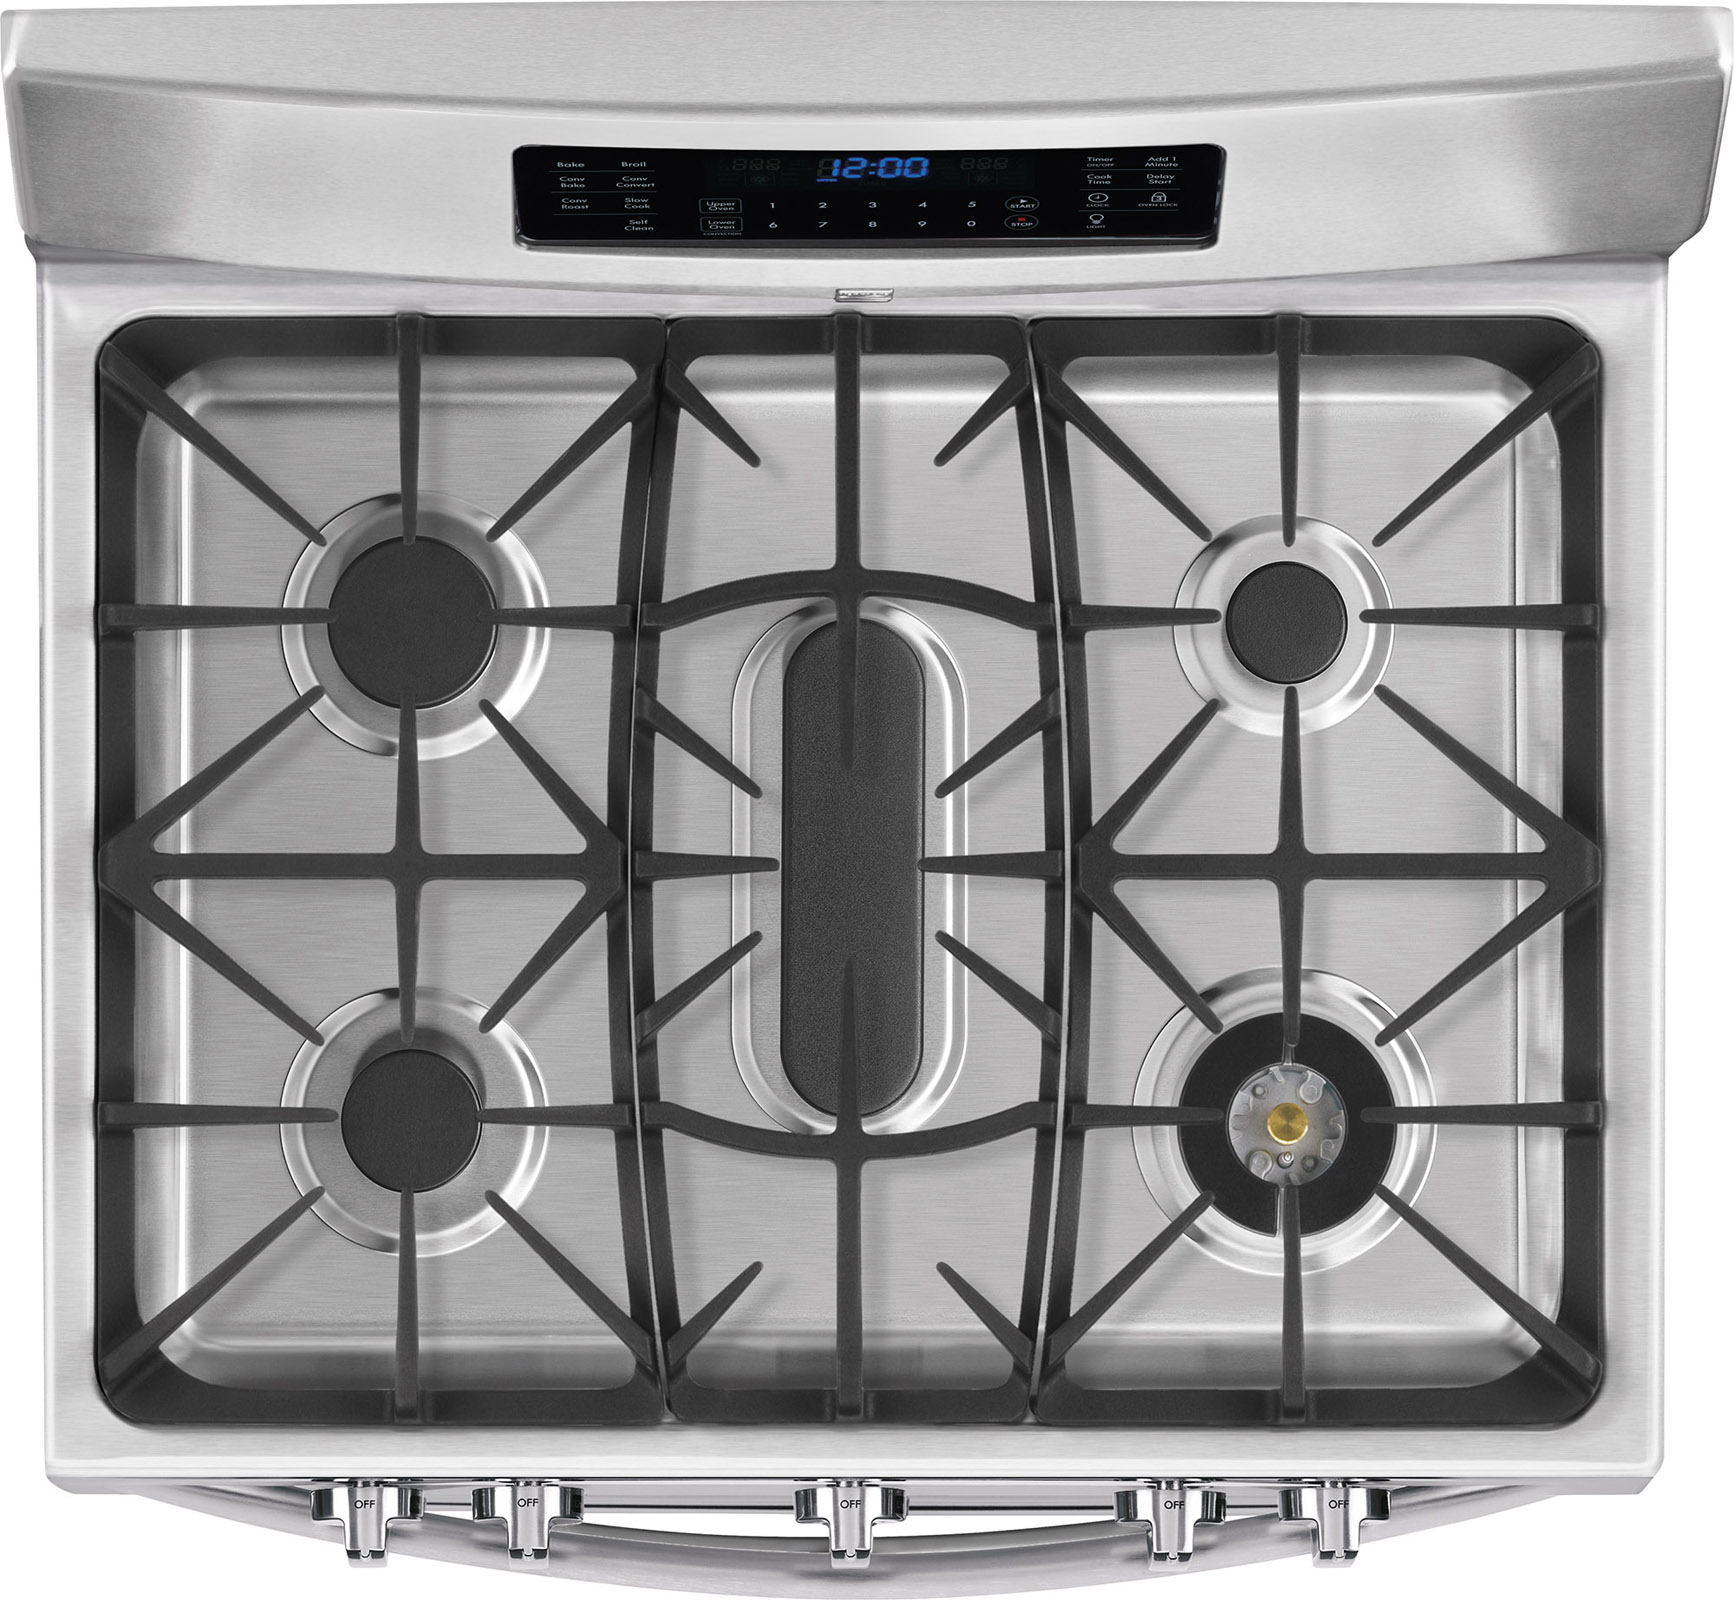 Kenmore Elite 75443  5.9 cu. ft. Double-Oven Gas Range - Stainless Steel